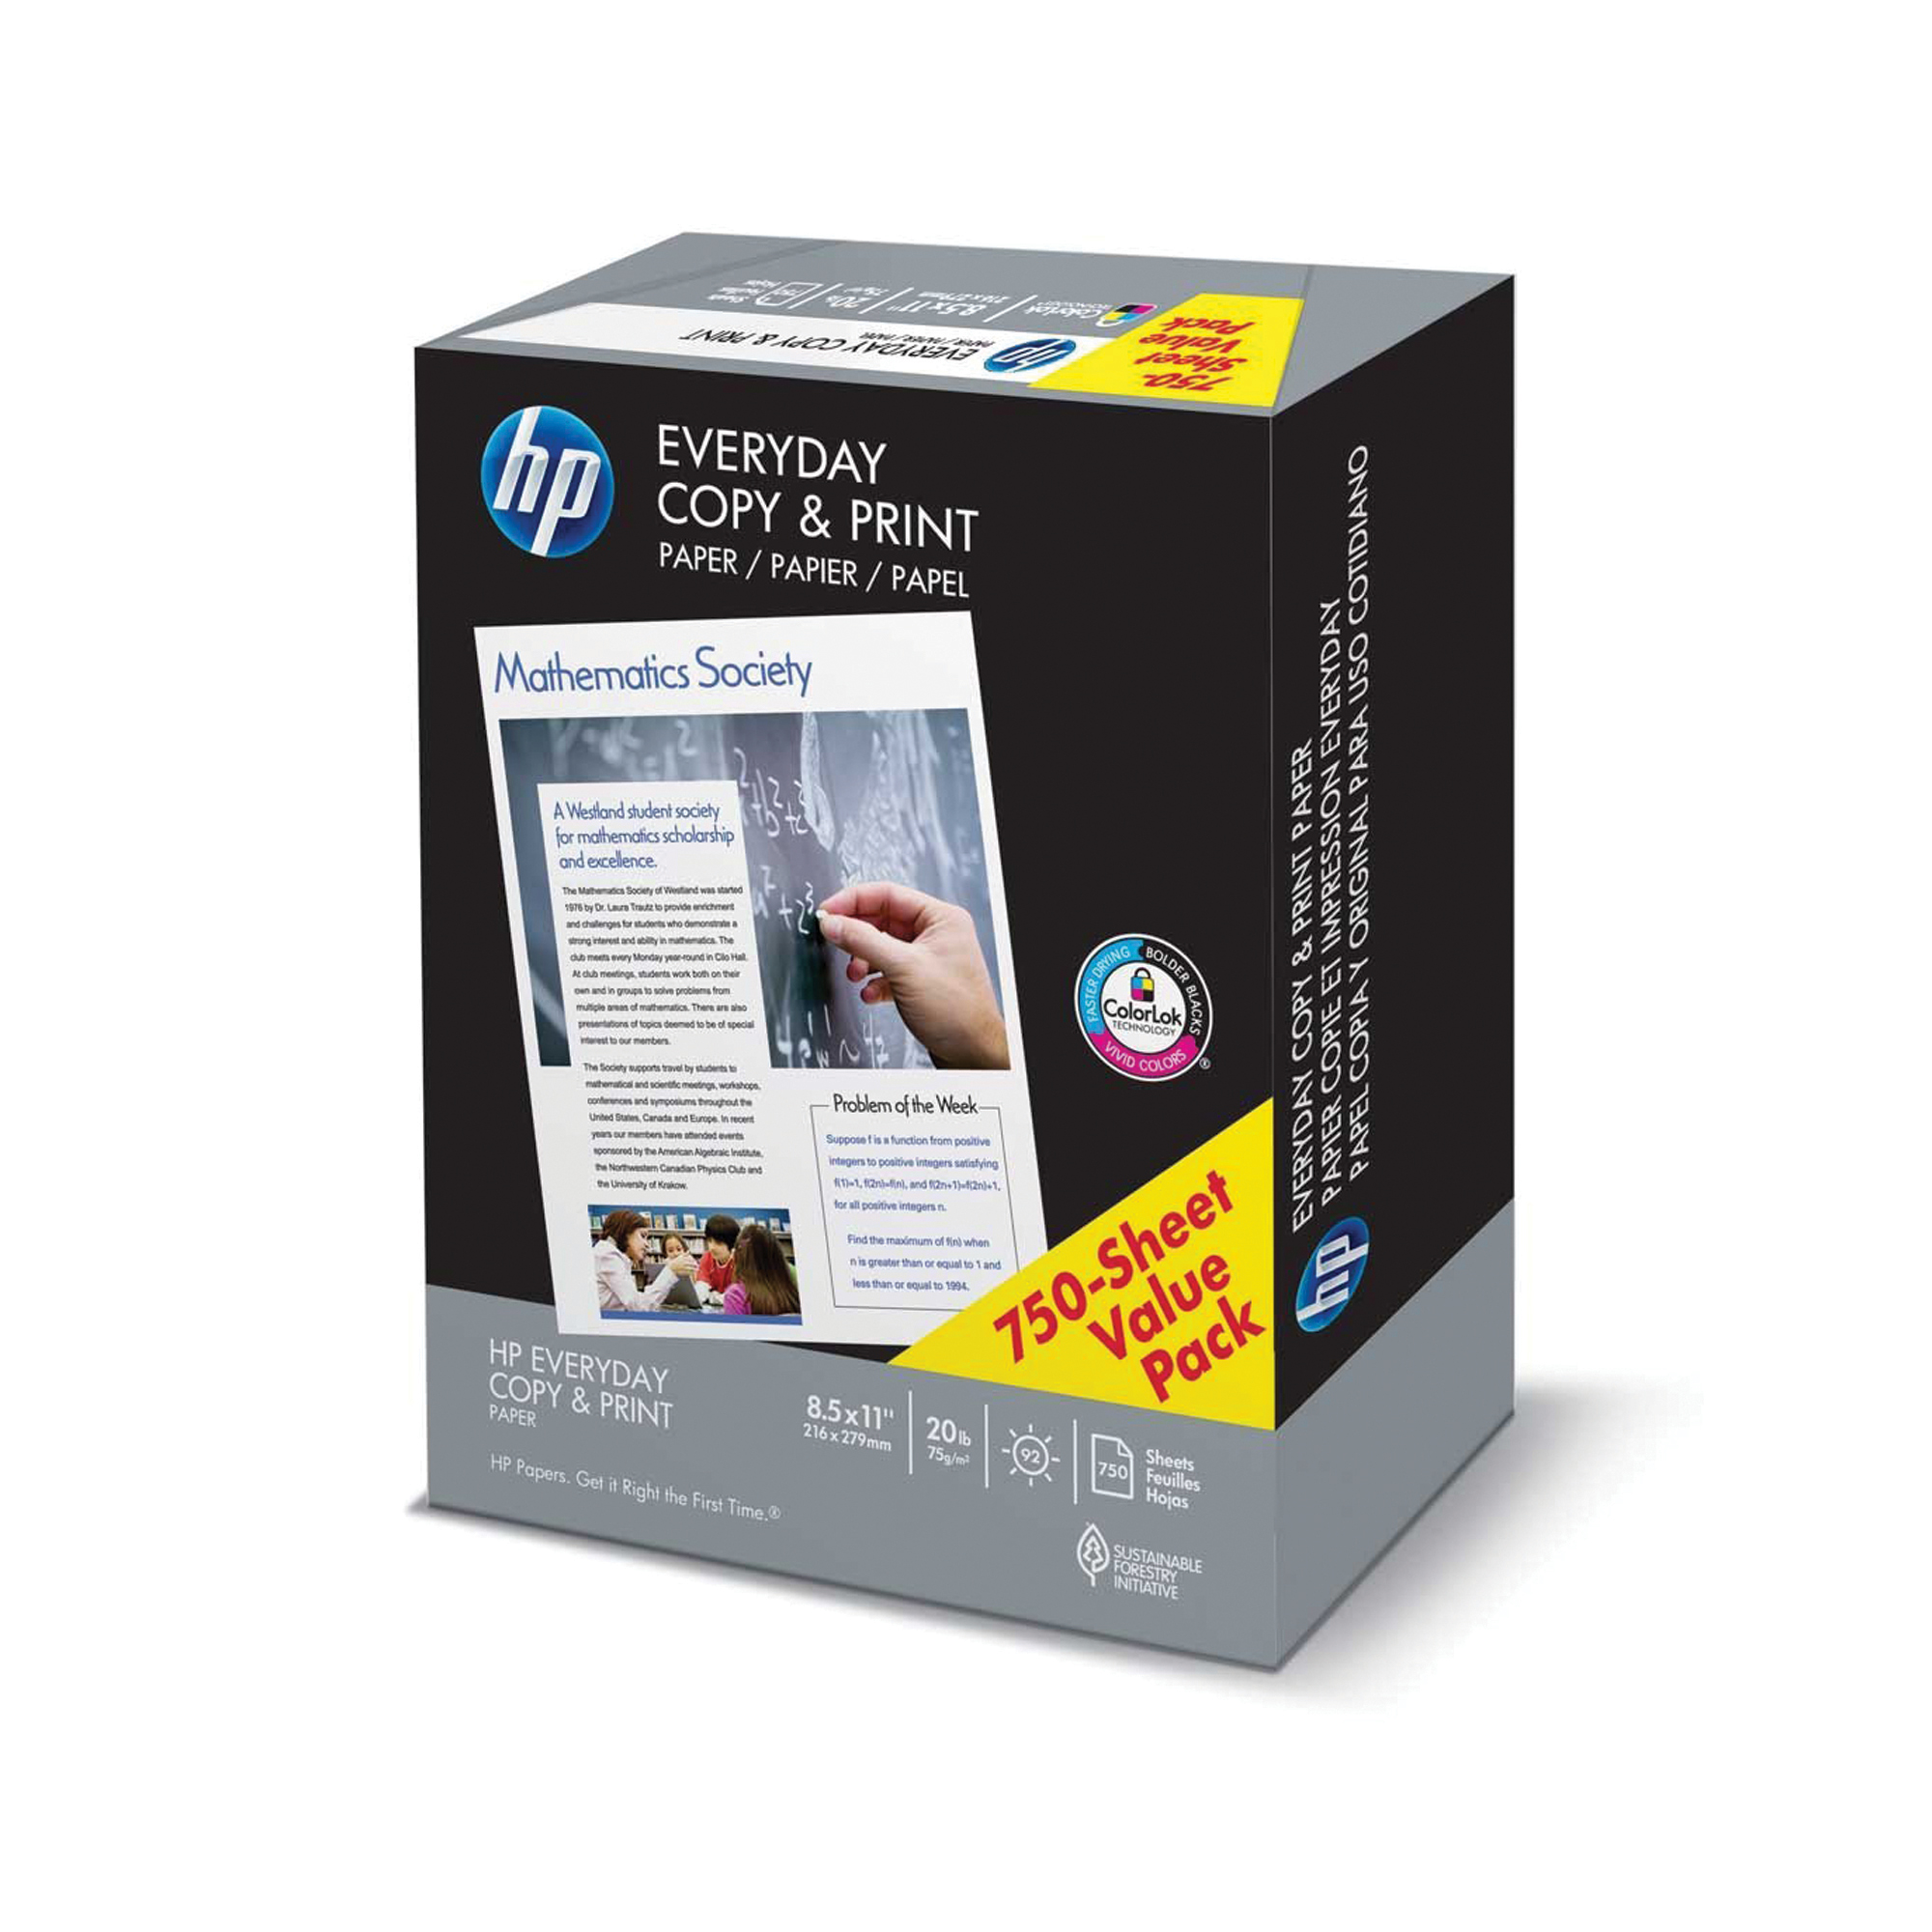 HP Paper, Everyday Copy and Print Poly Wrap, 20lb, 8.5 x 11, Letter, 92 Bright, 750 Sheets / 1 Ream (200030R)